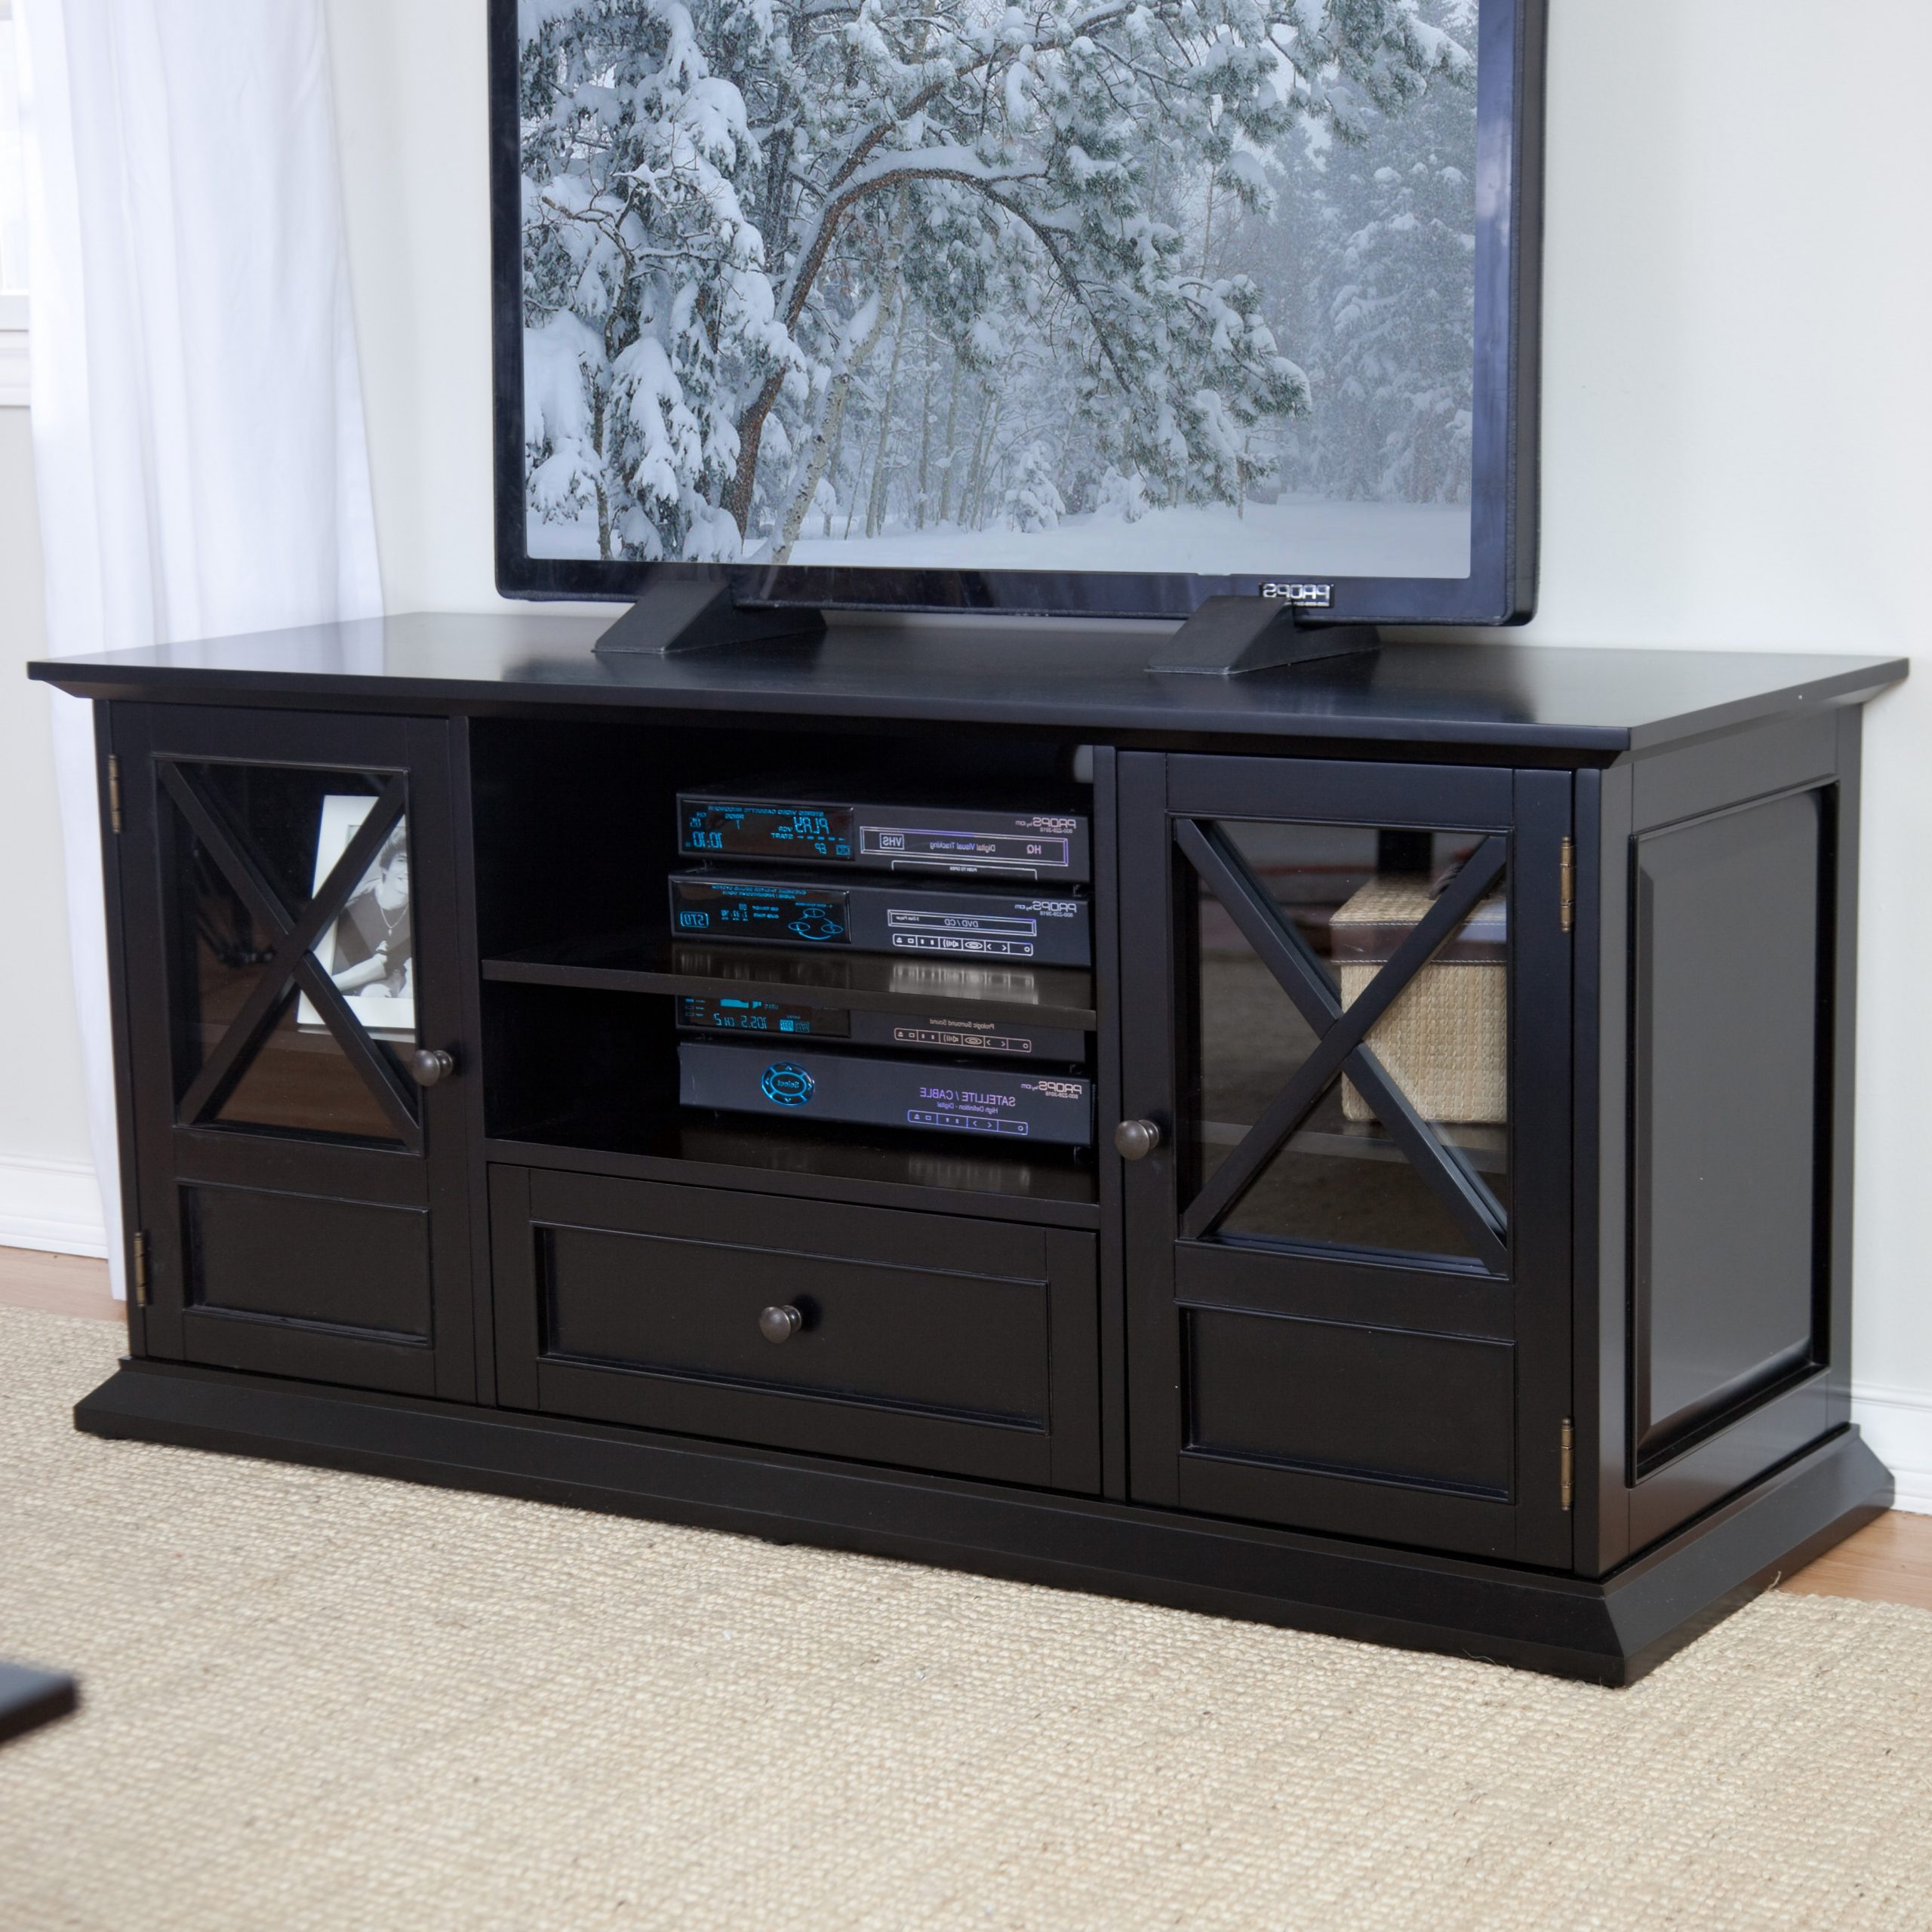 Belham Living Hampton 55 Inch Tv Stand – Black At Hayneedle Within Jackson Wide Tv Stands (View 6 of 20)